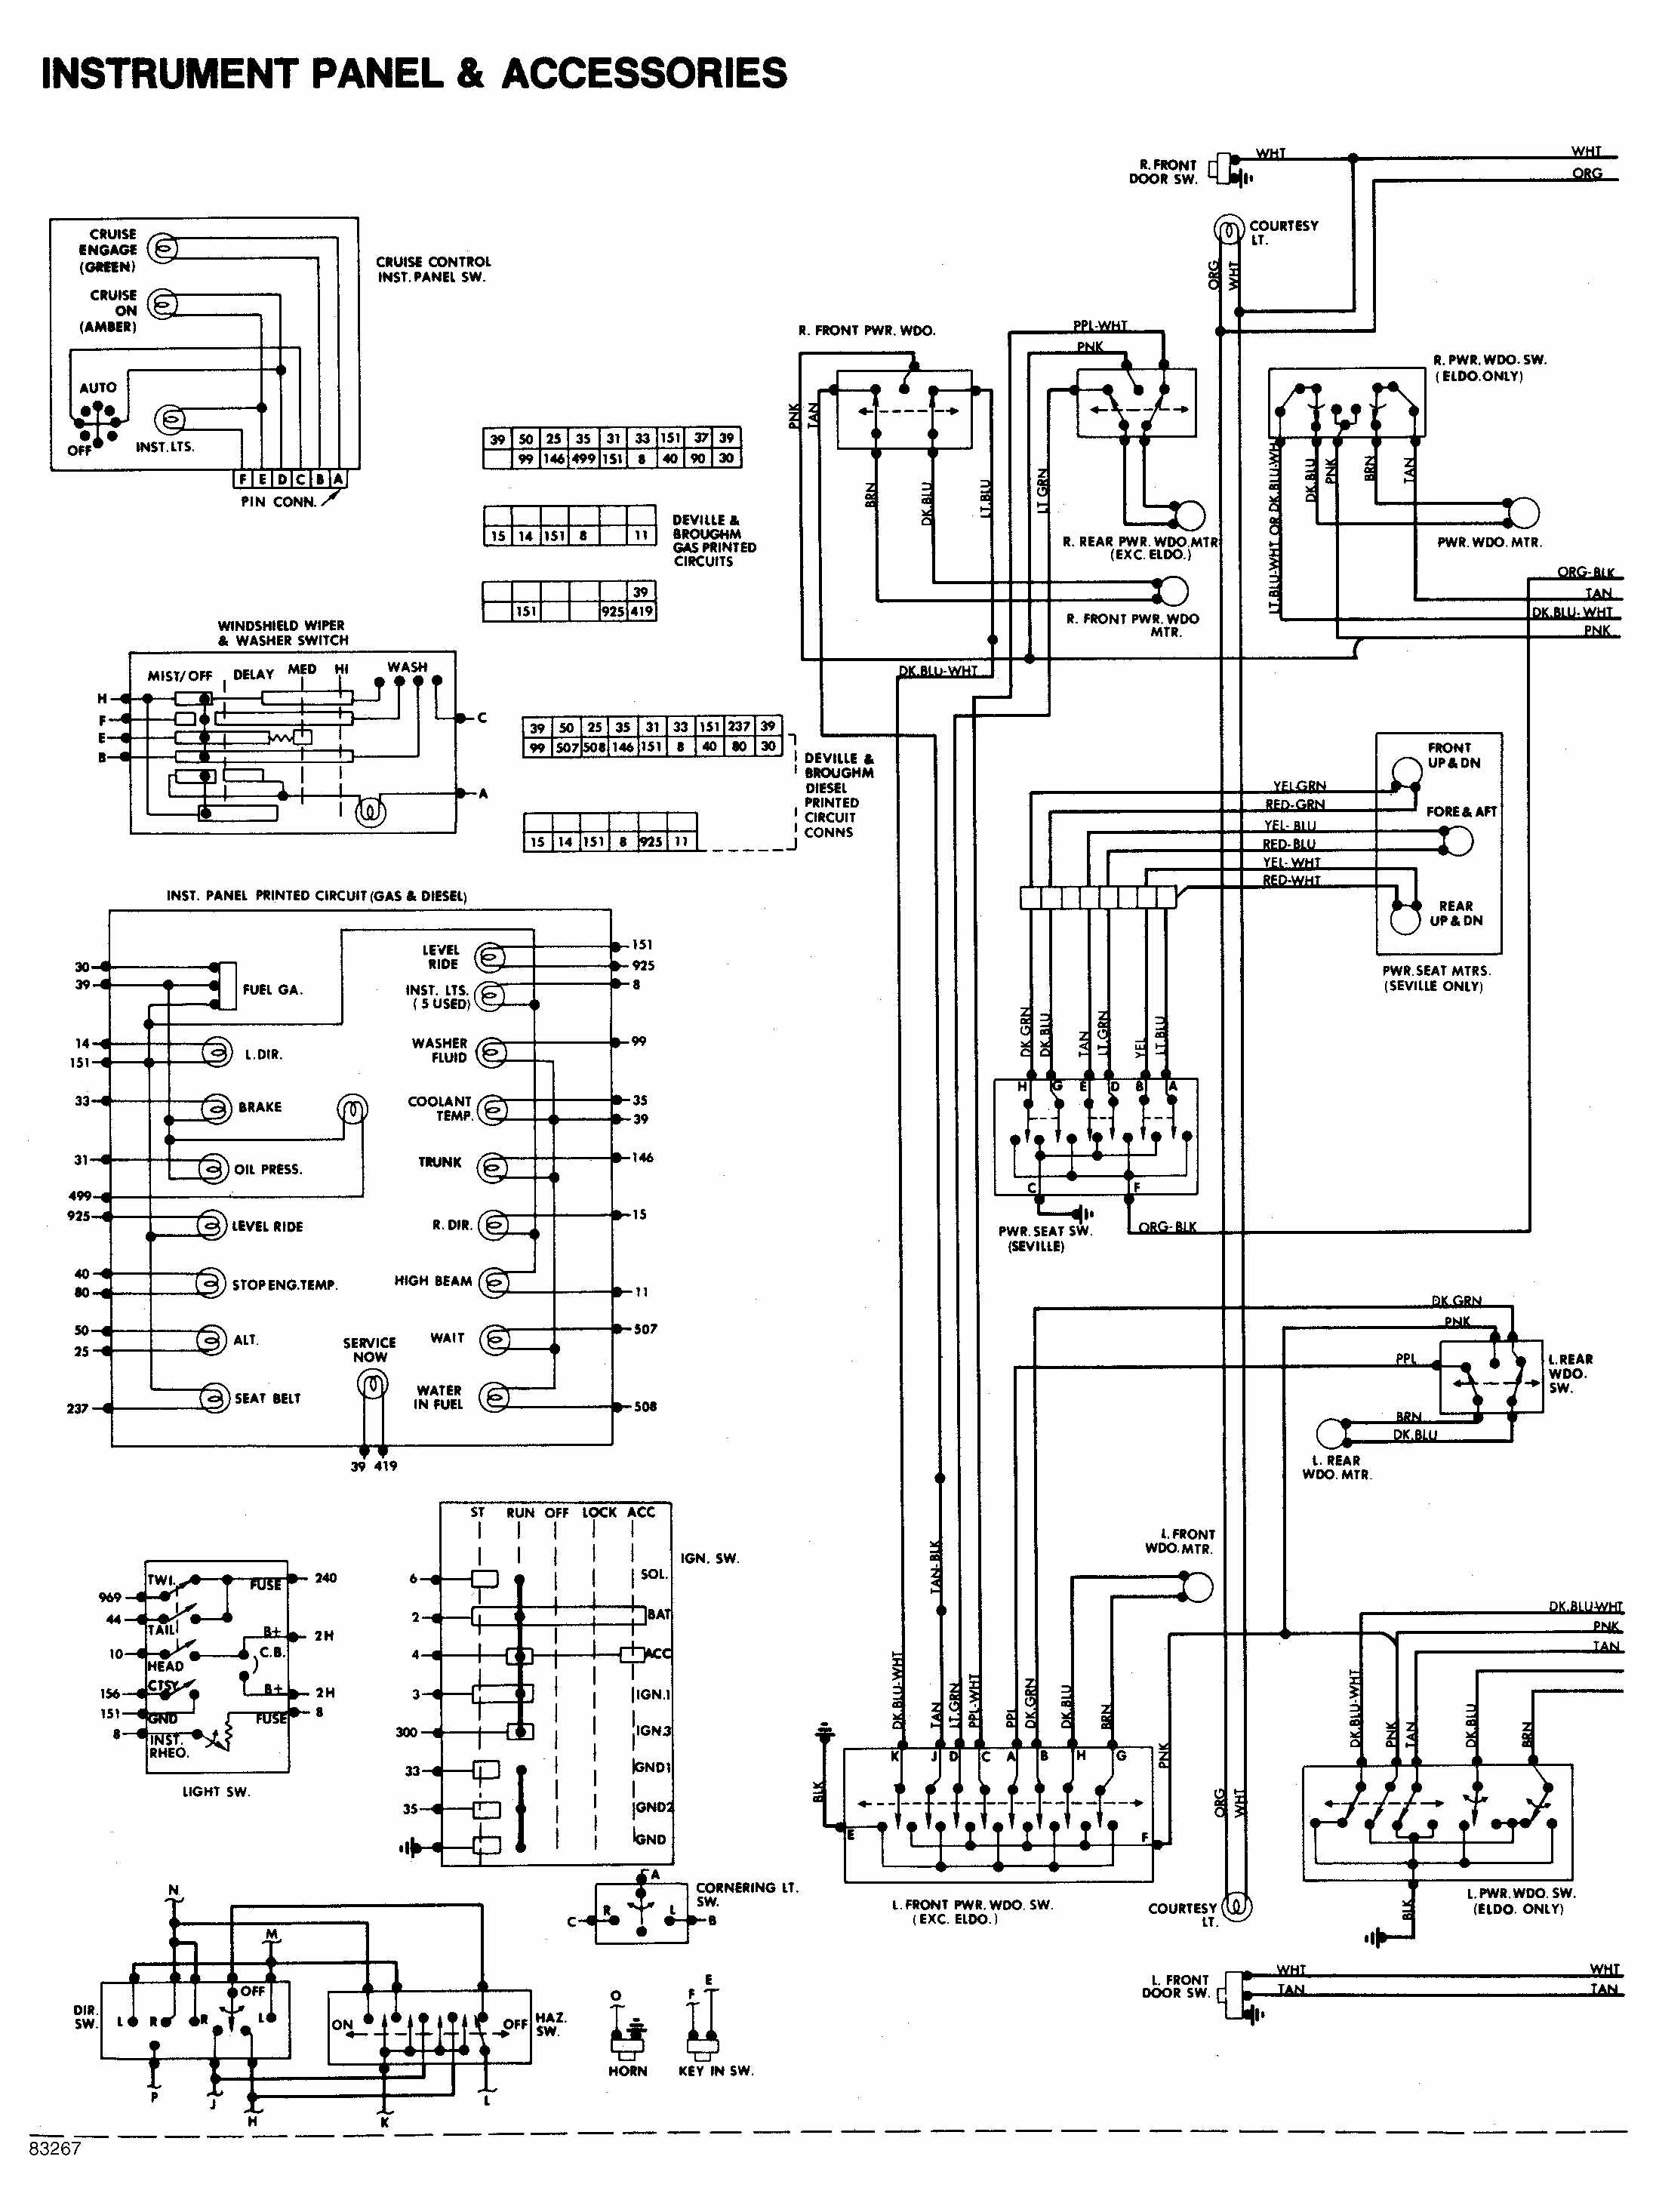 circuit diagram of twilight blinker